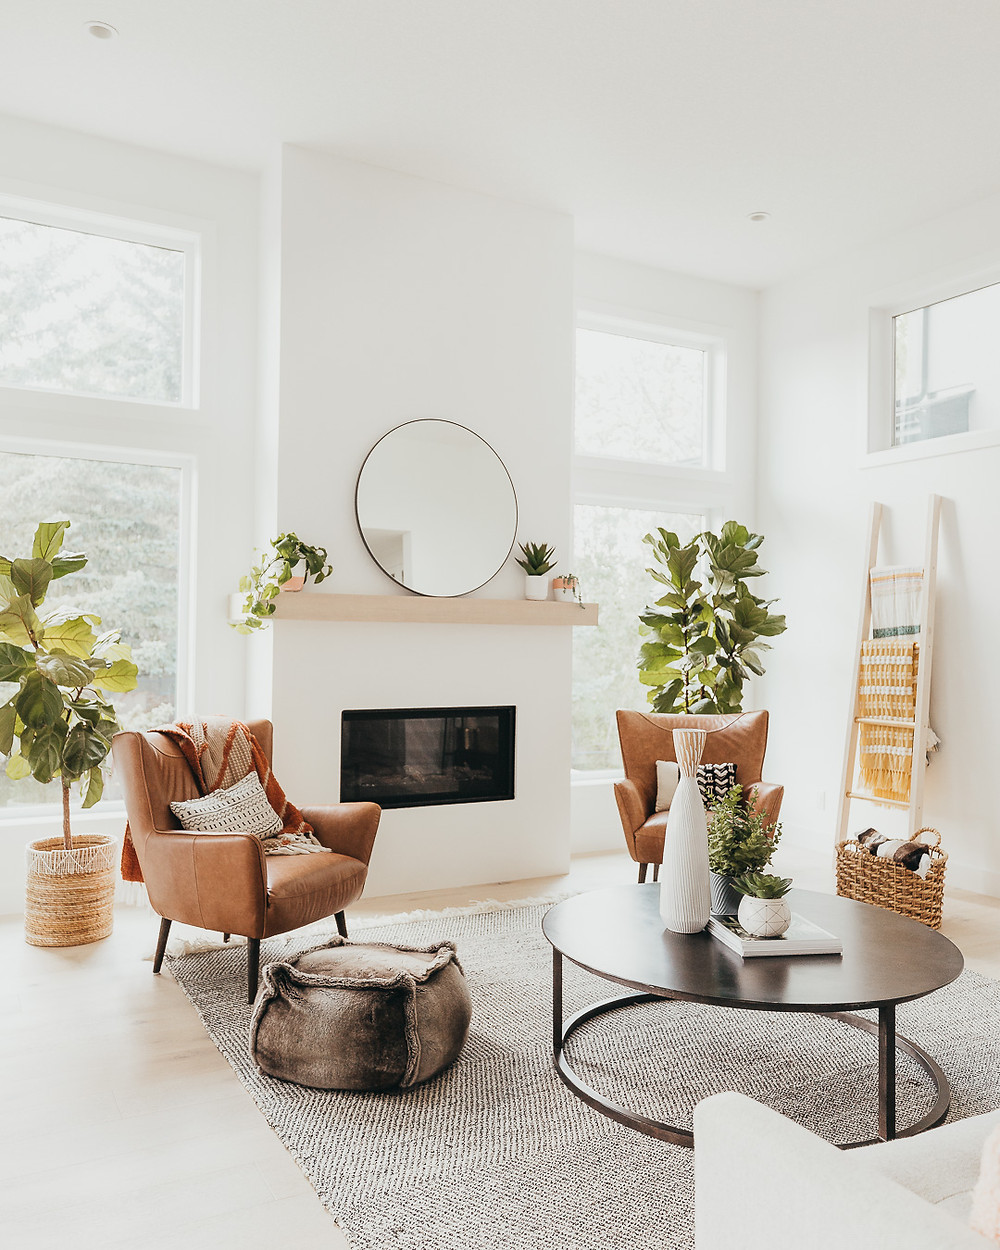 A white walled living room features natural light wood floors with a natural fibre striped rug, metal round coffee table, two brown leather chairs, brown fur pouf, blanket ladder, two fiddle leaf fig plants and a fireplace with a natural wood mantel holding a mirror and some plants.